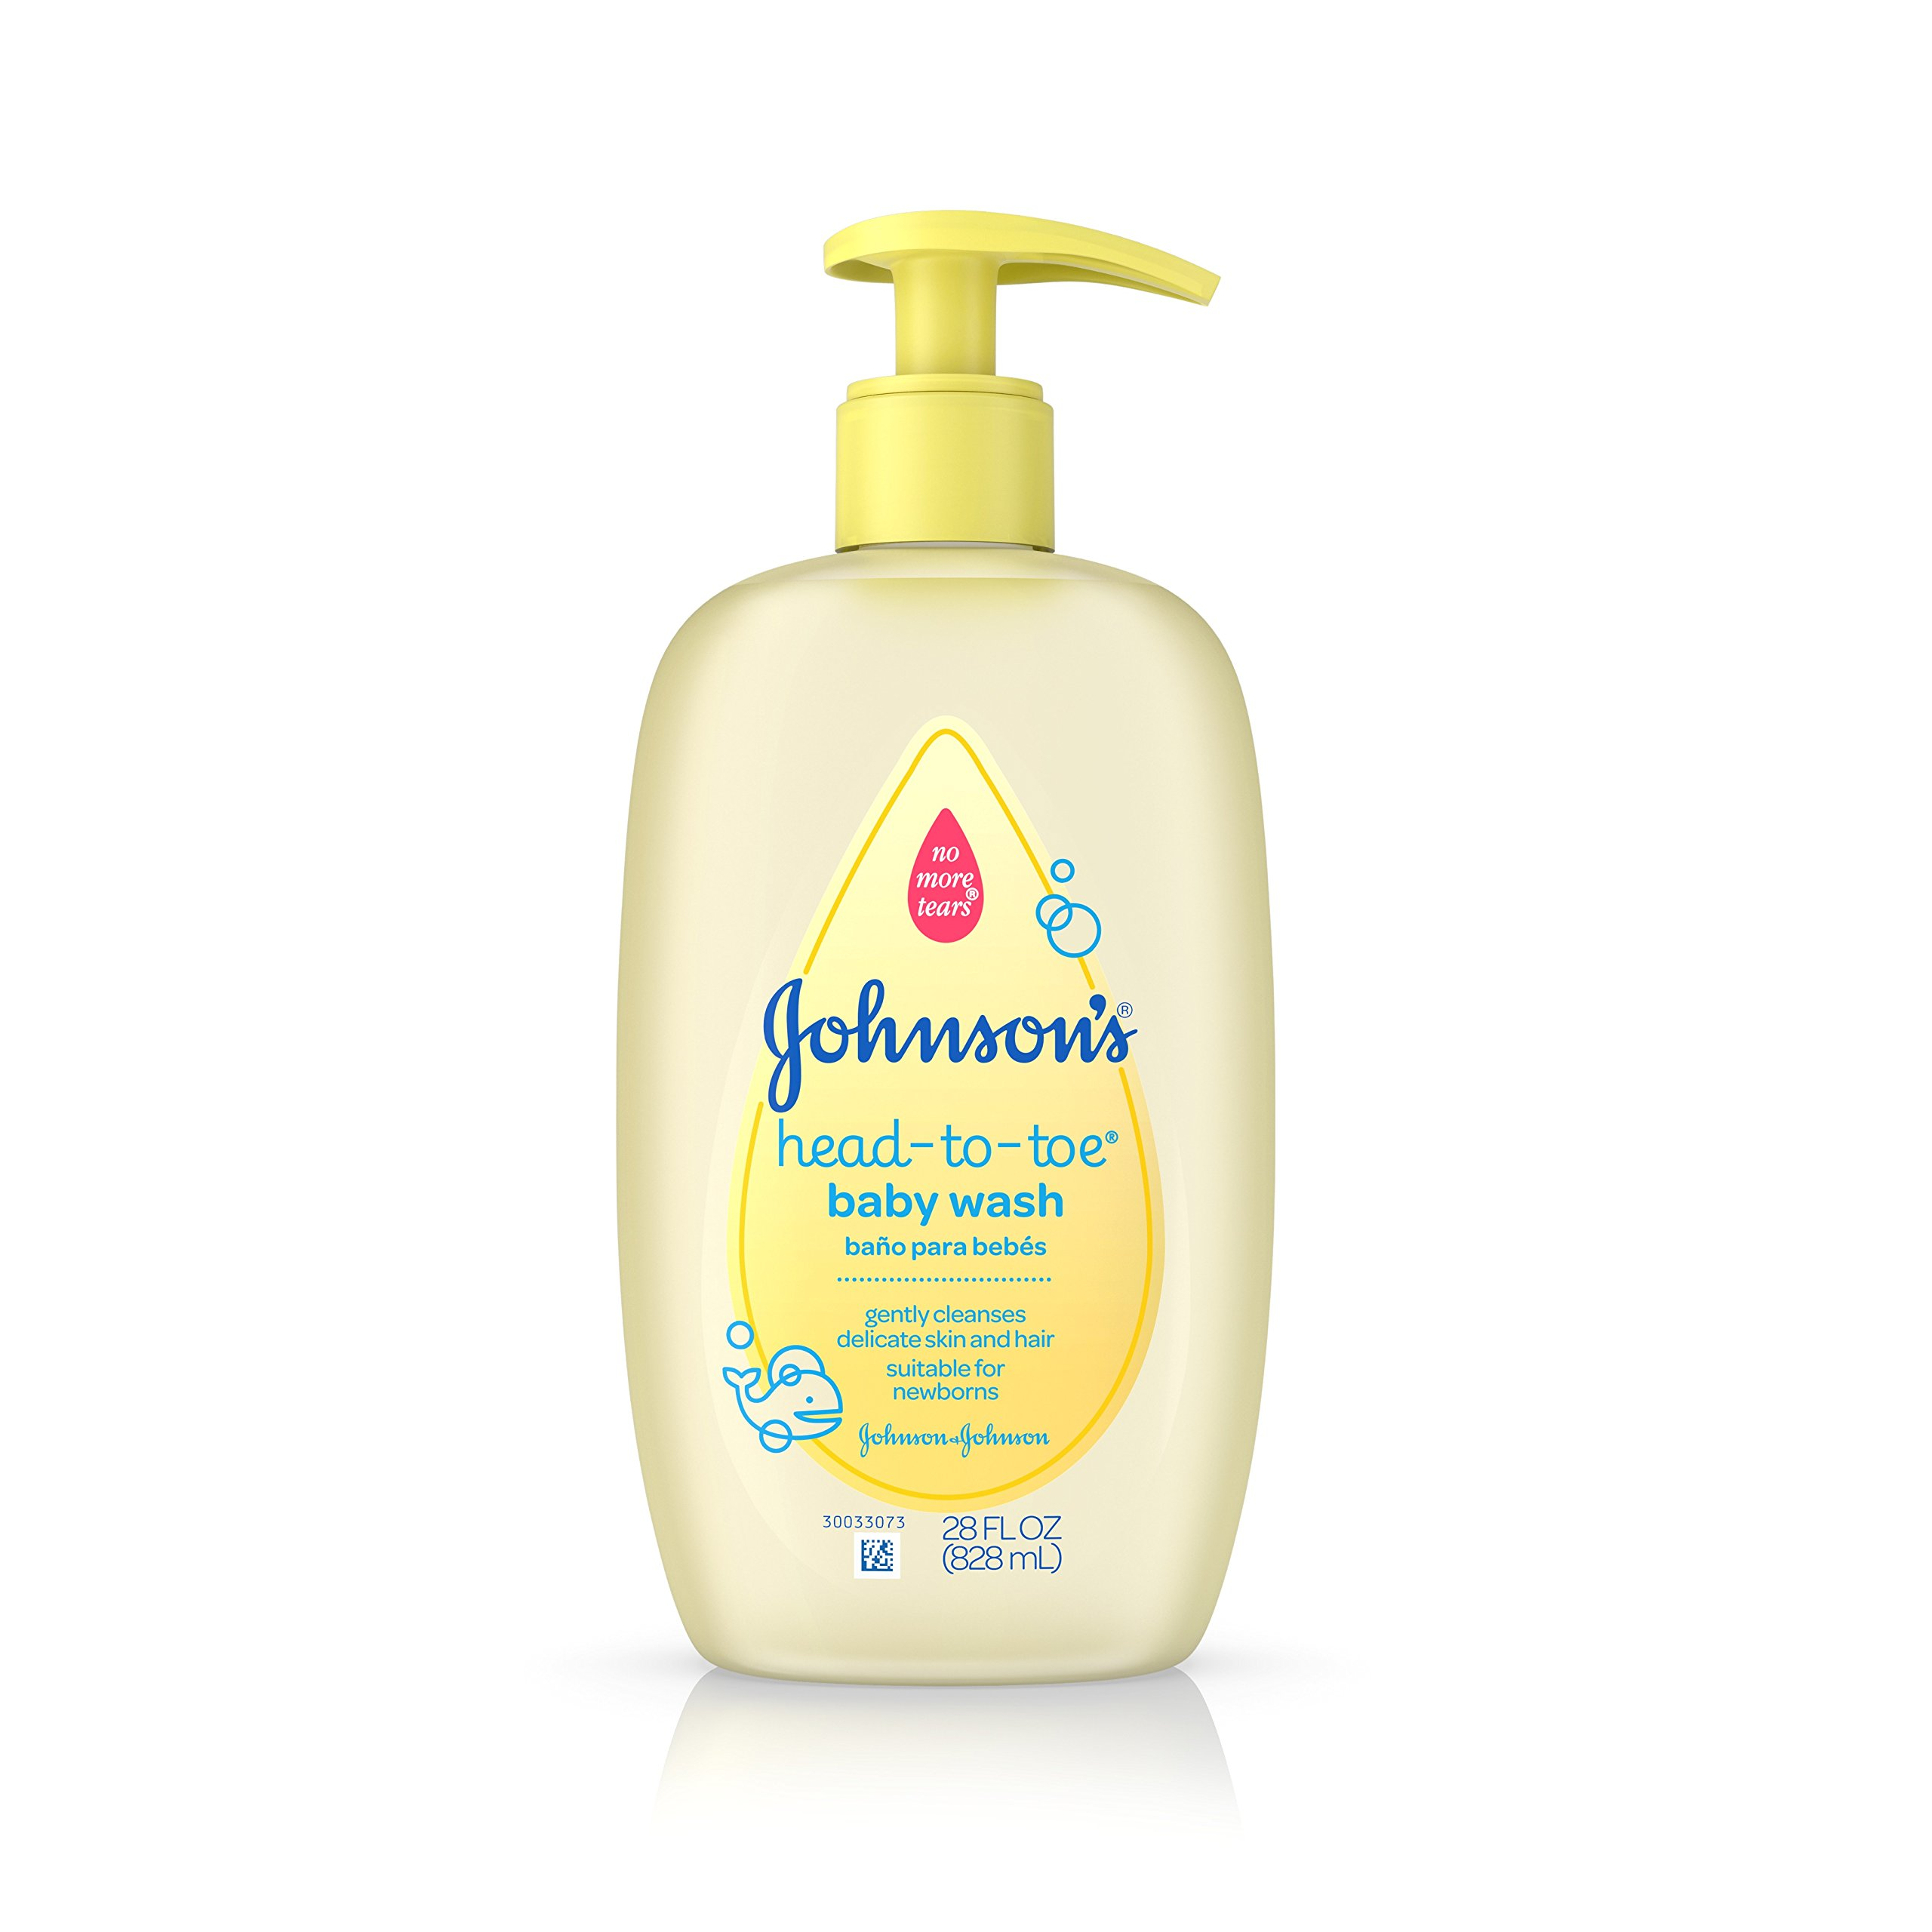 Johnson's Head-To-Toe Gentle Baby Wash, 28 Fl. Oz.